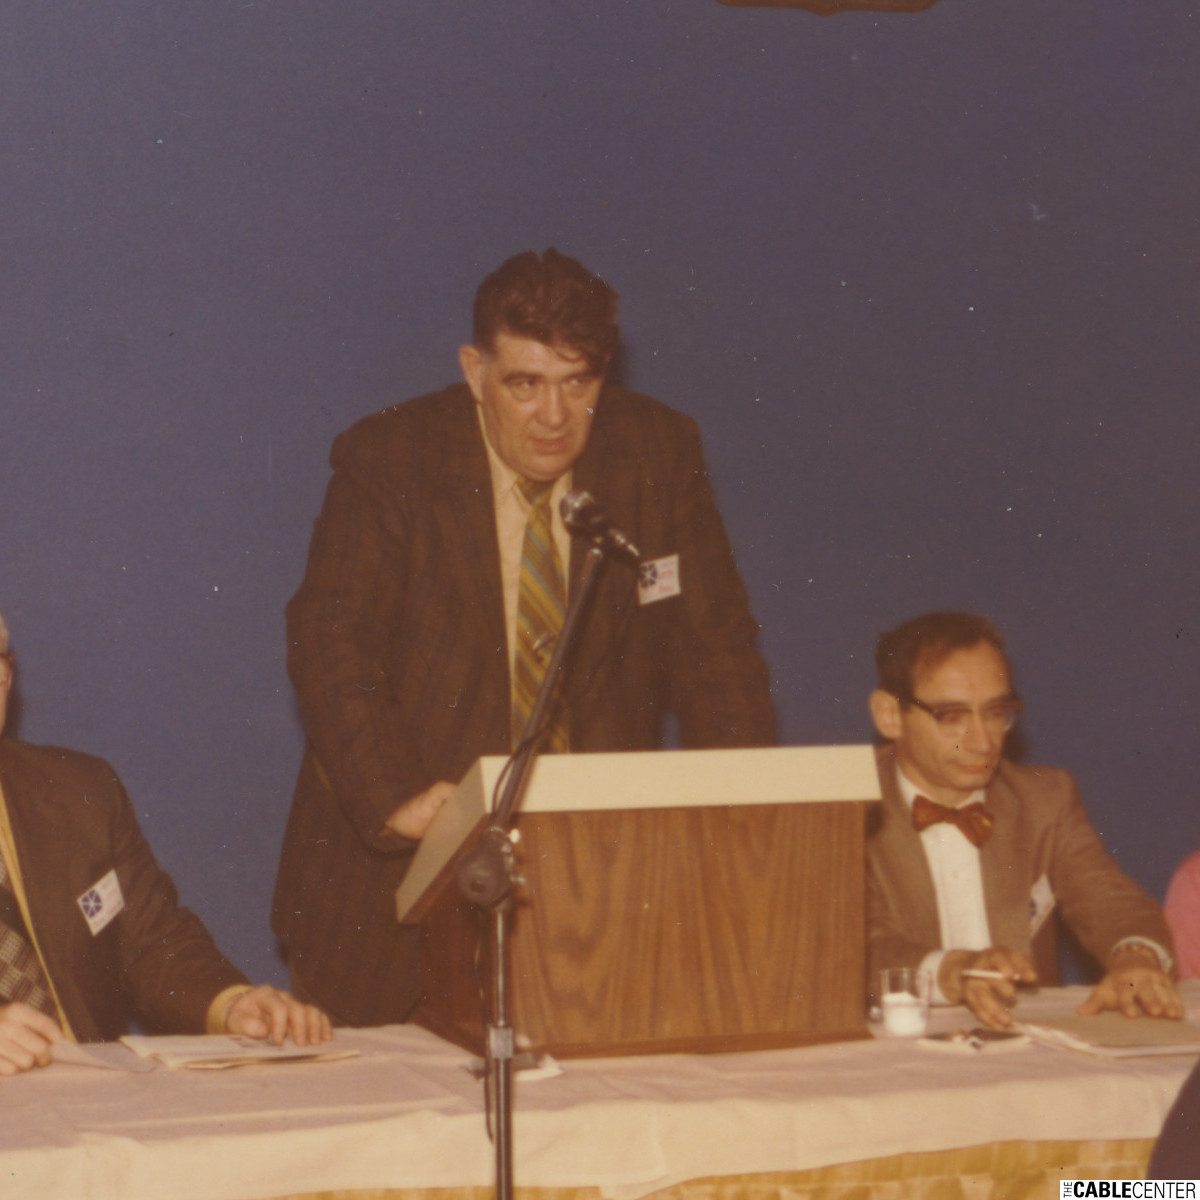 Bob Clark, Owen Hannigan, William Kenny at 1973 NECTA convention